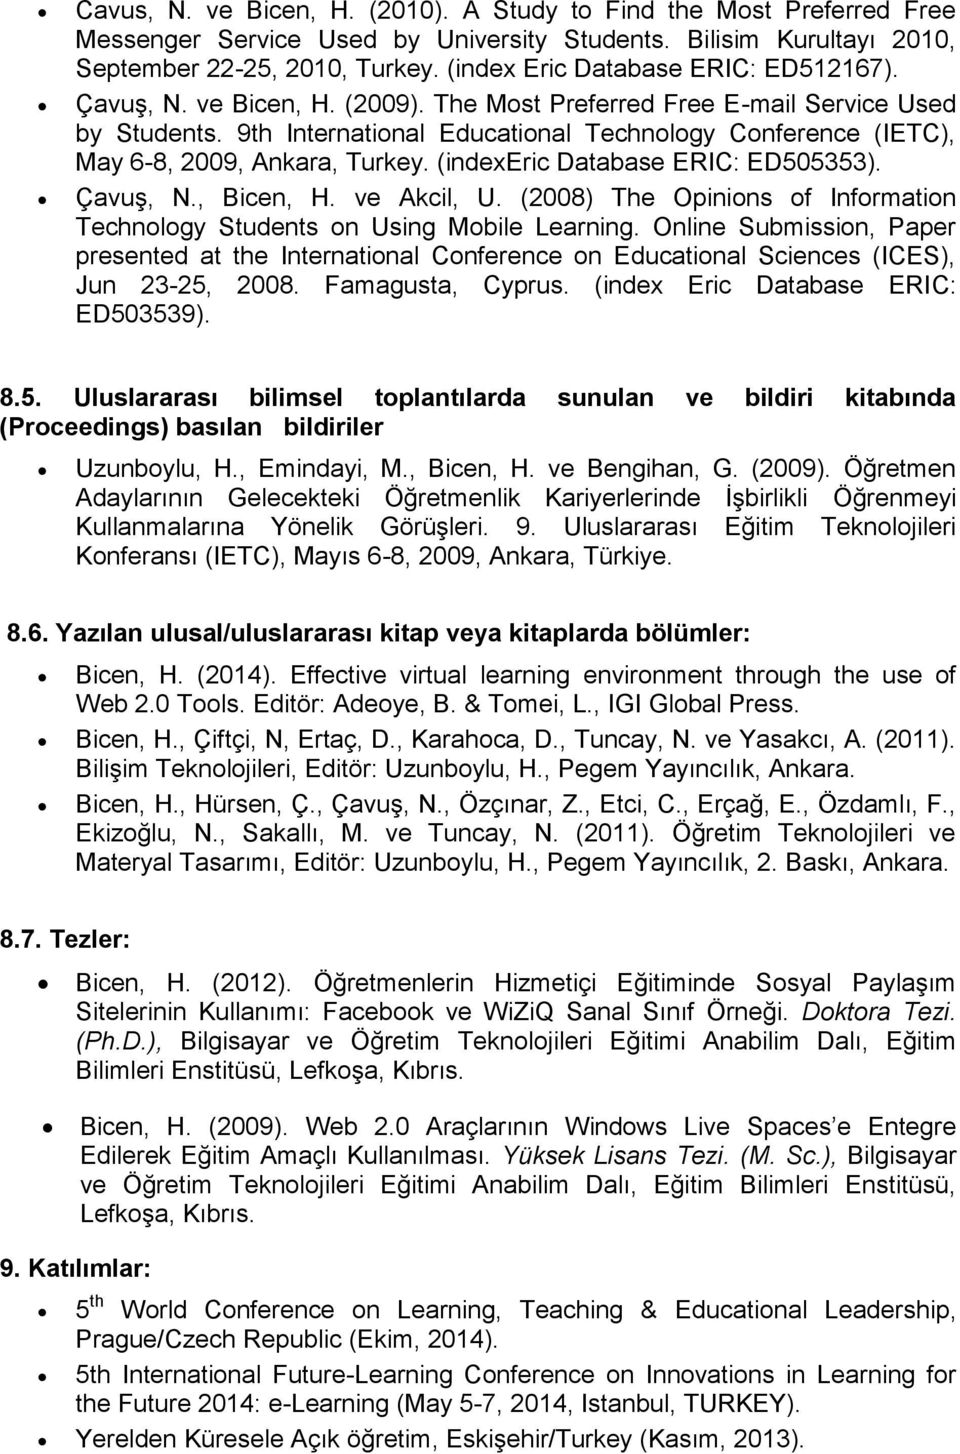 9th International Educational Technology Conference (IETC), May 6-8, 2009, Ankara, Turkey. (indexeric Database ERIC: ED505353). Çavuş, N., Bicen, H. ve Akcil, U.